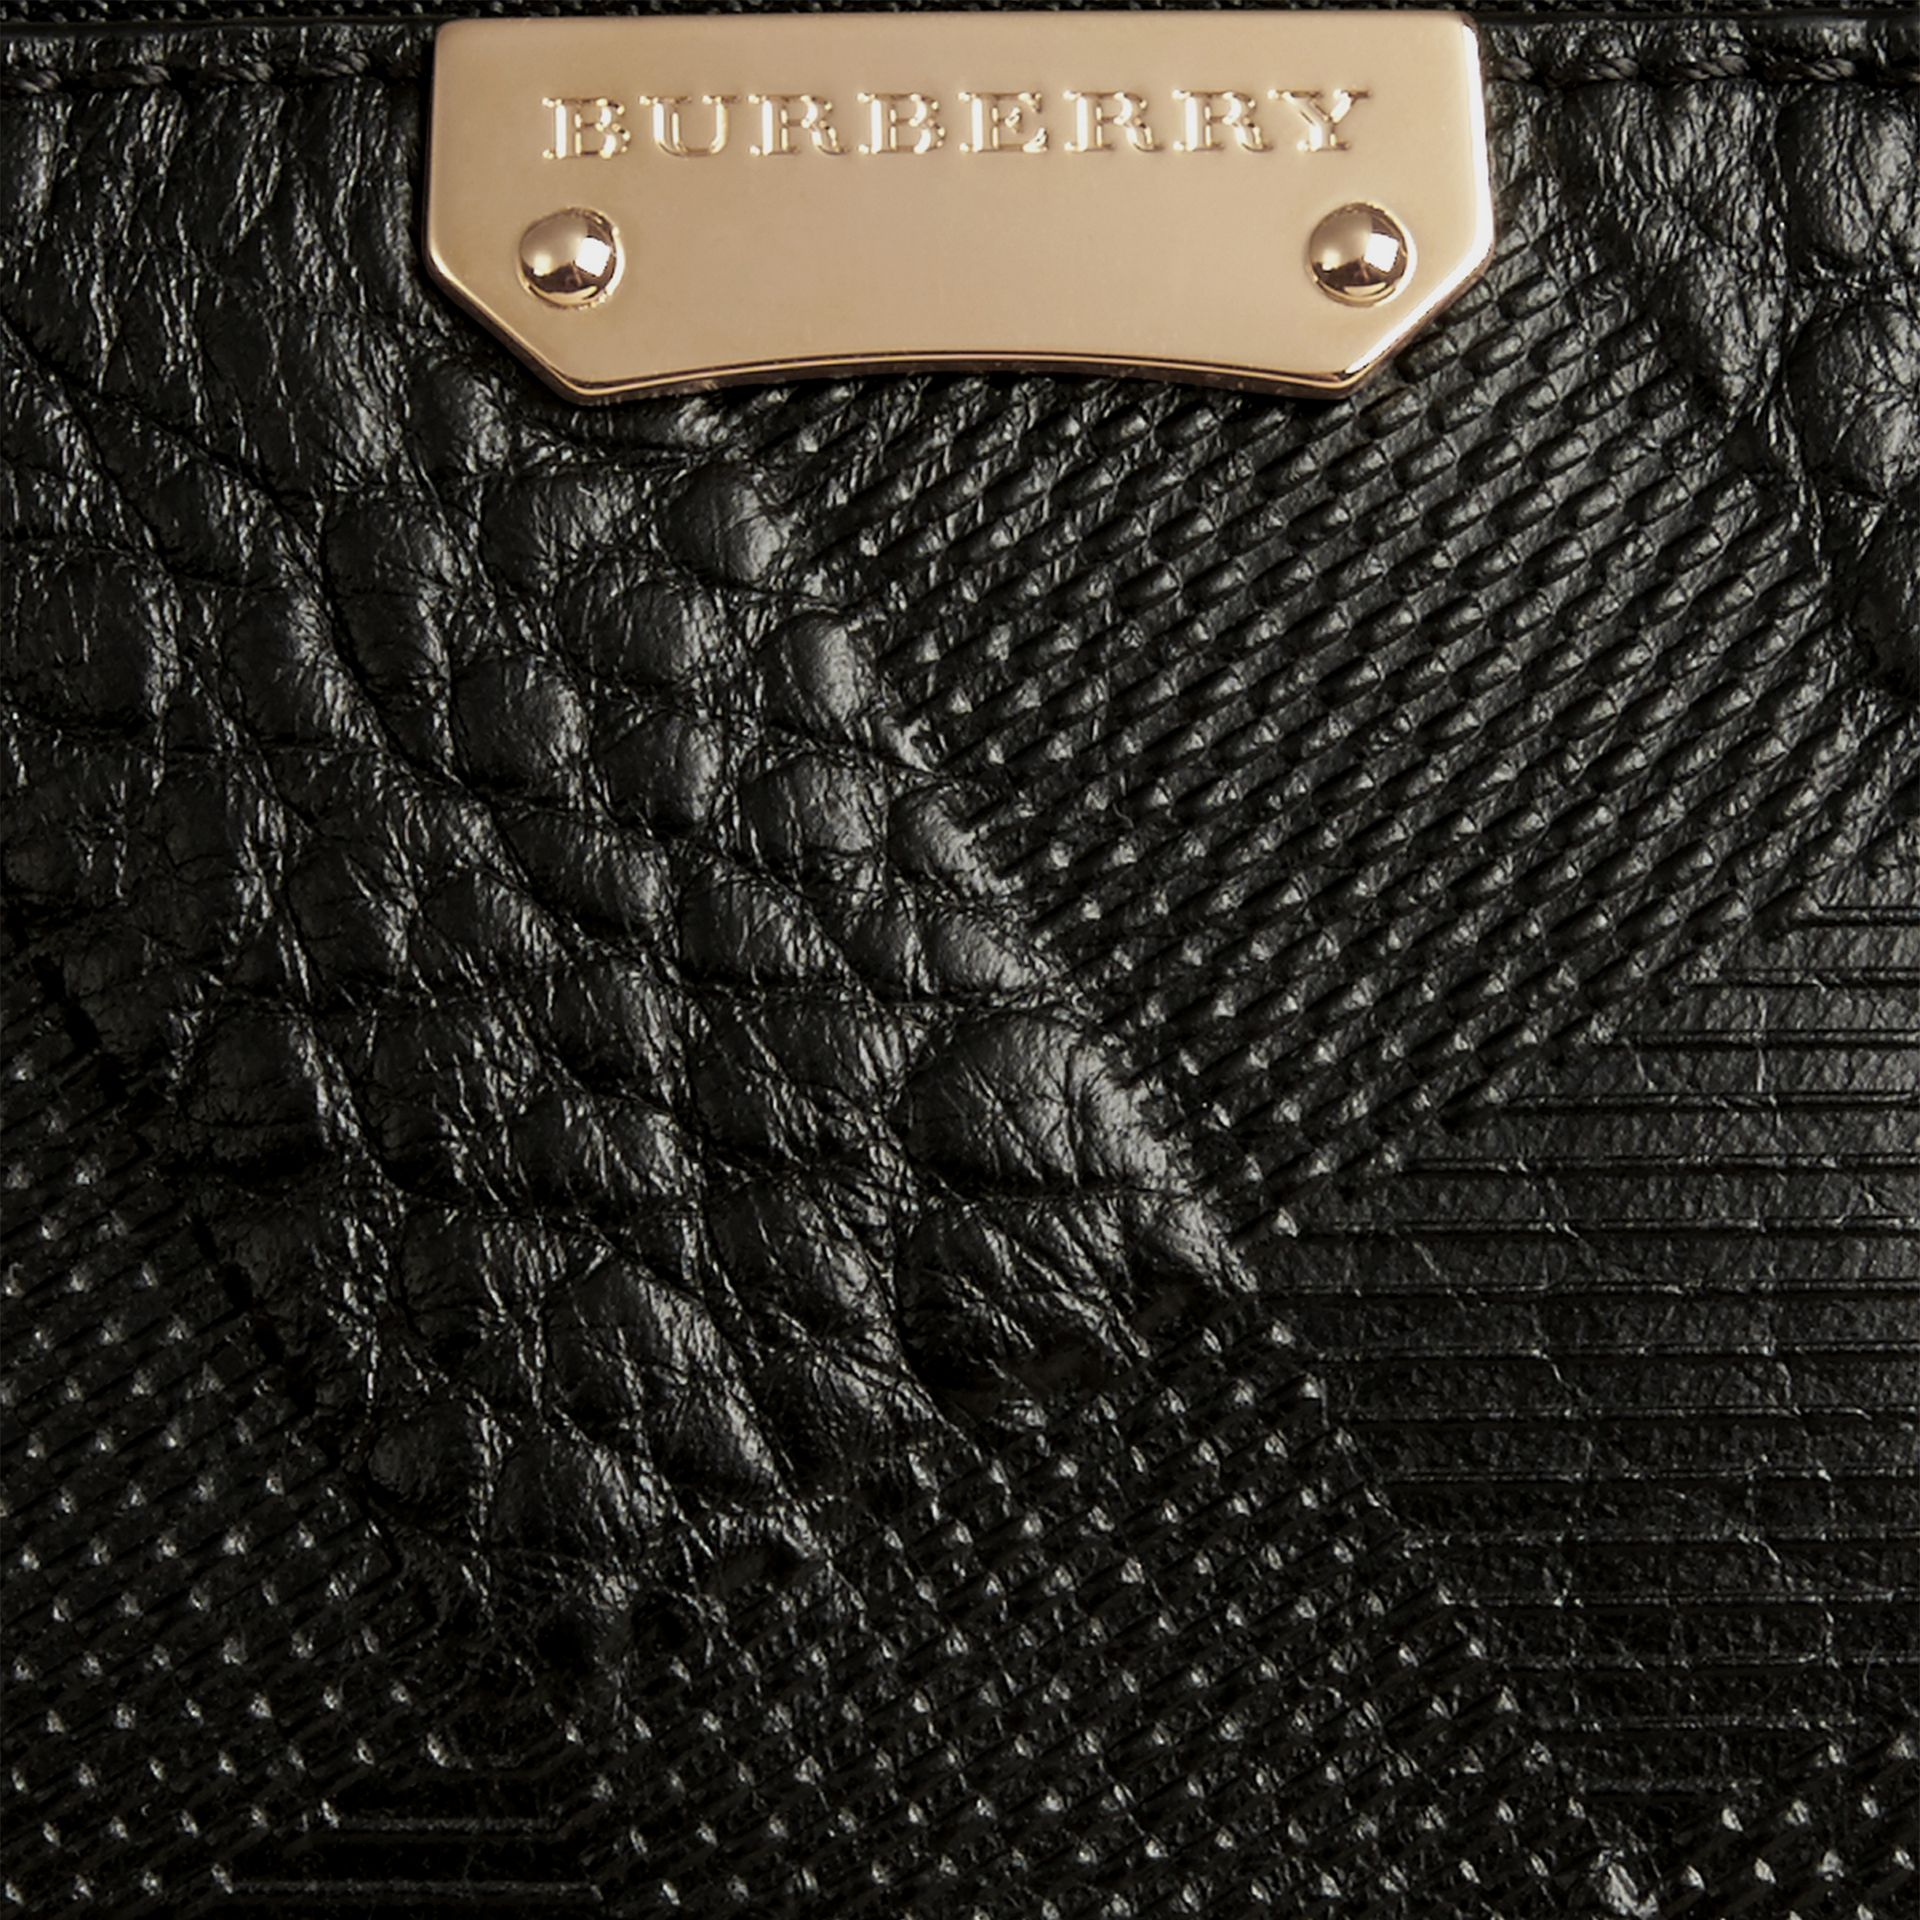 Black Check-embossed Leather Clutch Bag Black - gallery image 2